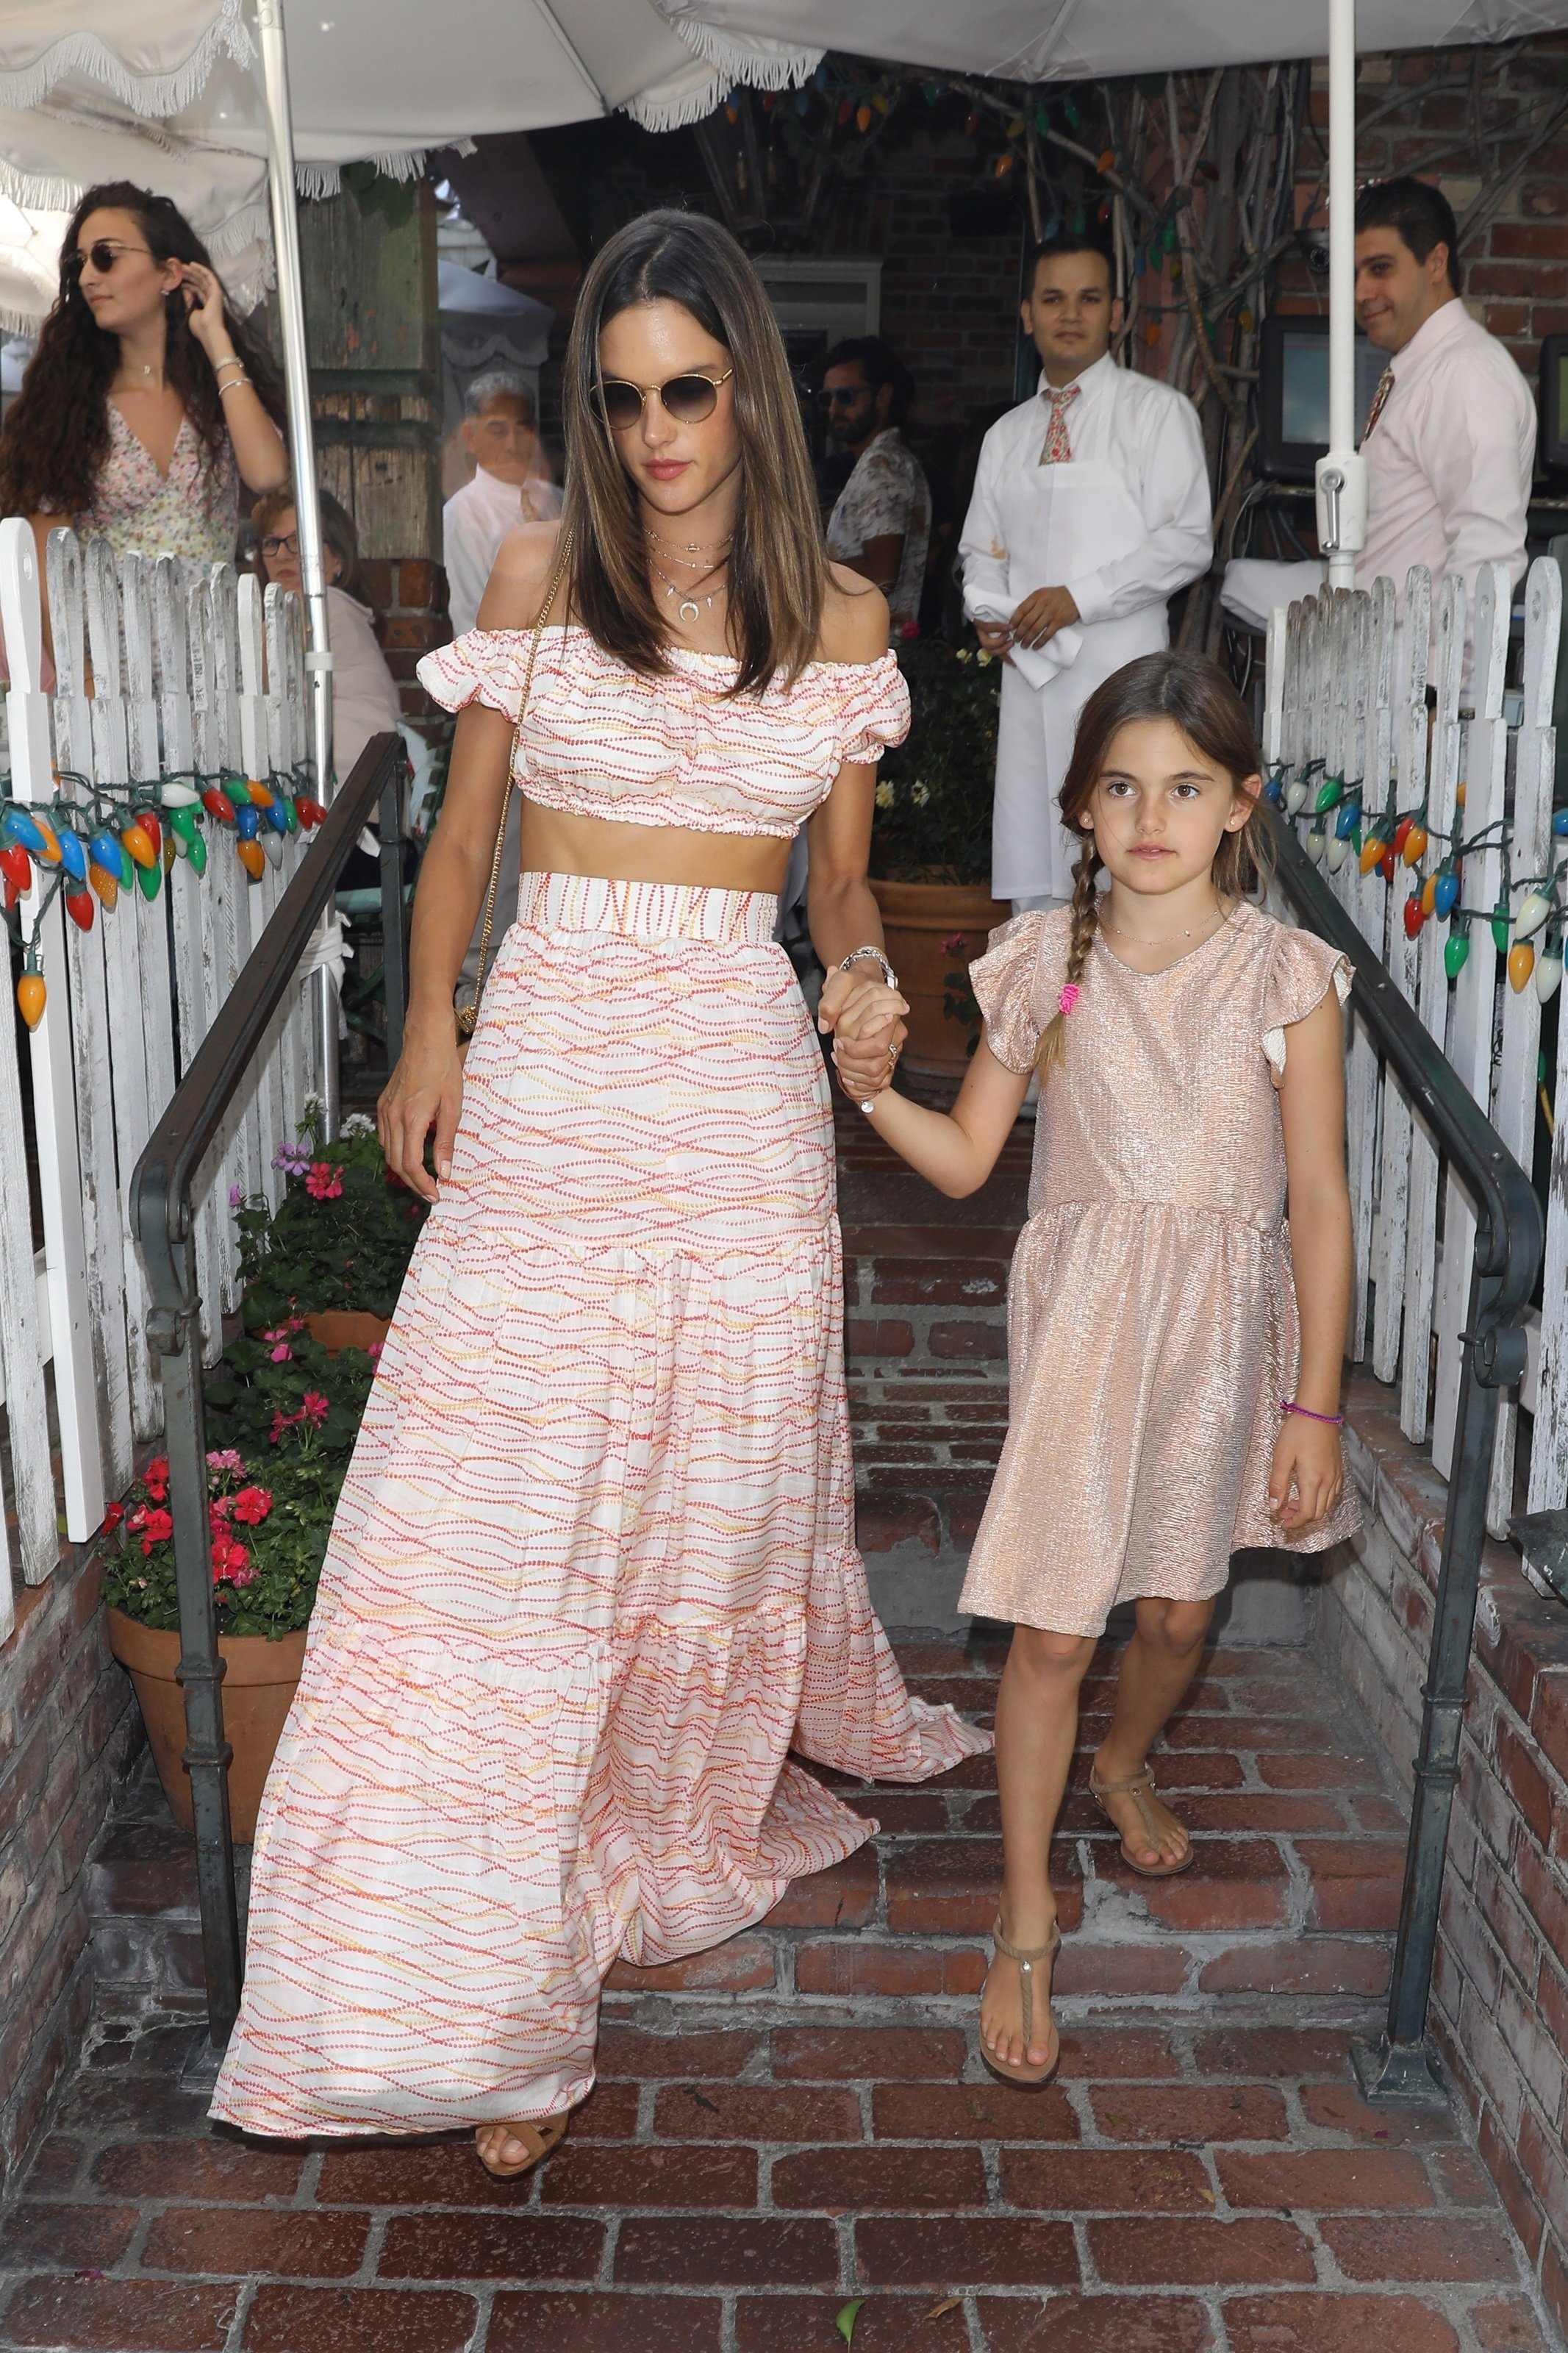 West Hollywood, CA  - Alessandra Ambrosio shows off a matching top and skirt for lunch at The Ivy with her daughter Anja for her 9th birthday and son Noah. Alessandra looks great as she shows off the tanned and toned skin while walking with her birthday girl after lunch together.  Pictured: Alessandra Ambrosio  BACKGRID USA 24 AUGUST 2017, Image: 346405730, License: Rights-managed, Restrictions: , Model Release: no, Credit line: Profimedia, AKM-GSI